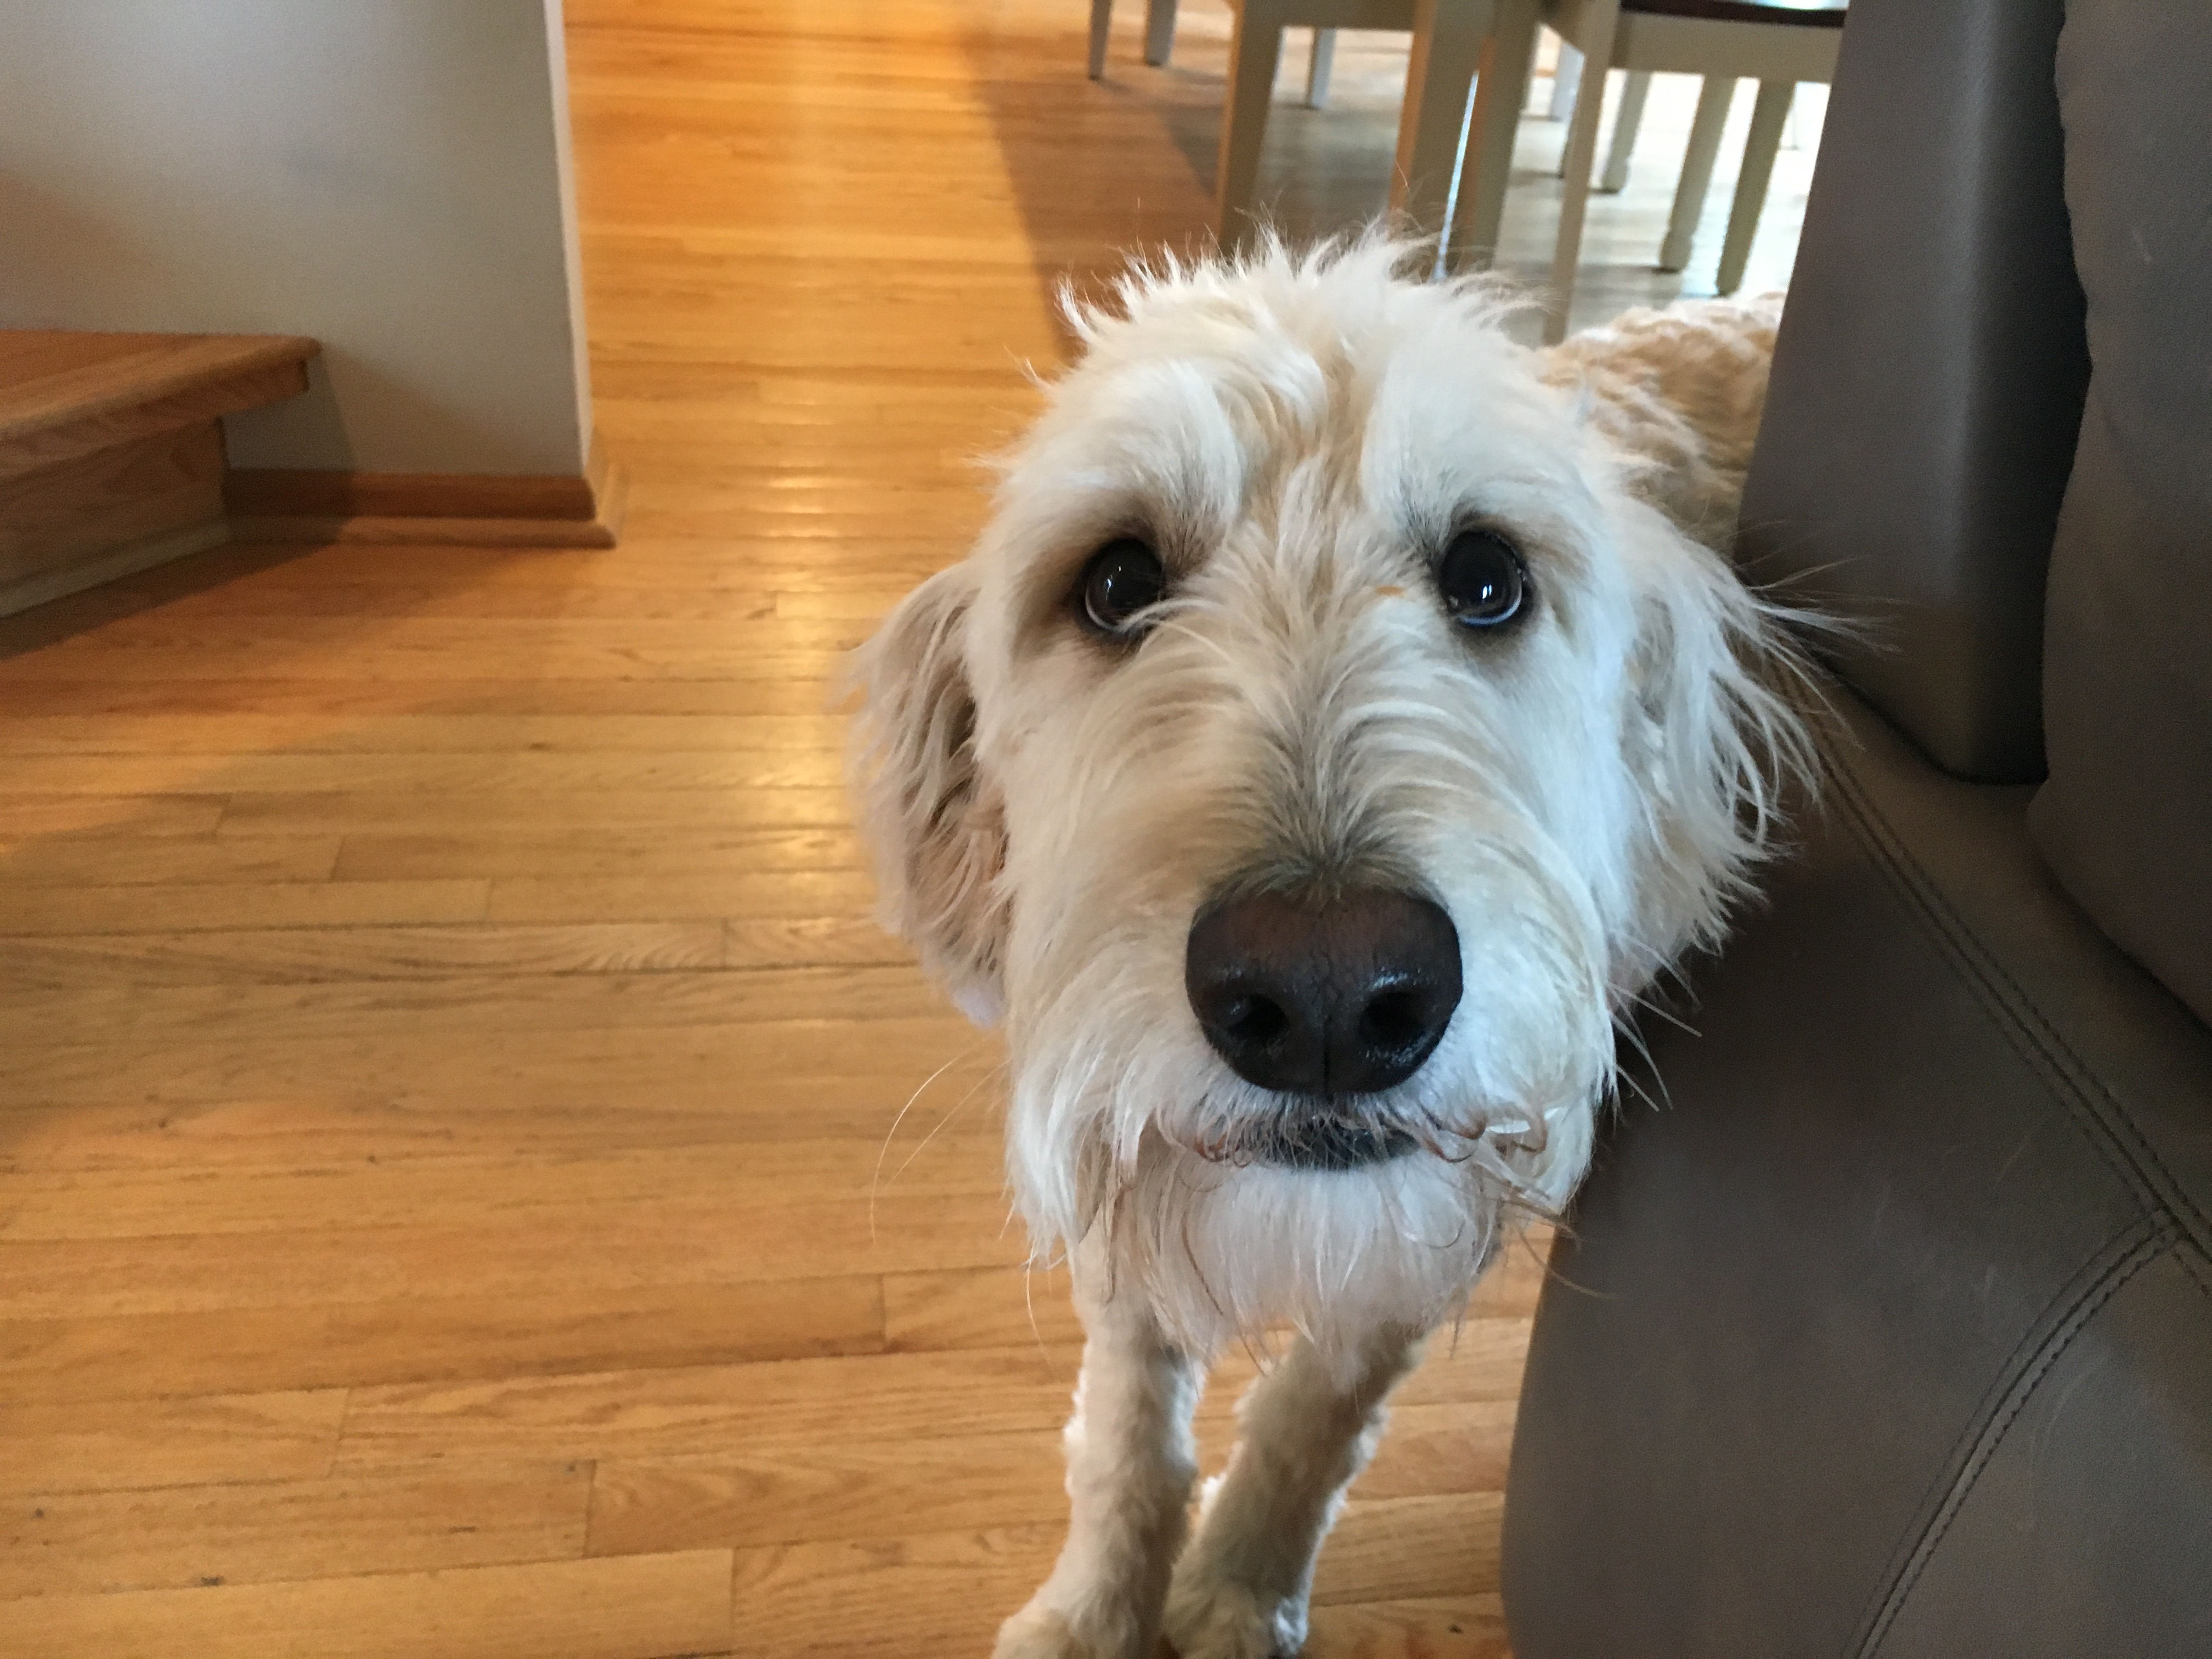 Teaching an Excited Goldendoodle to Not Jump on People: Dog Gone